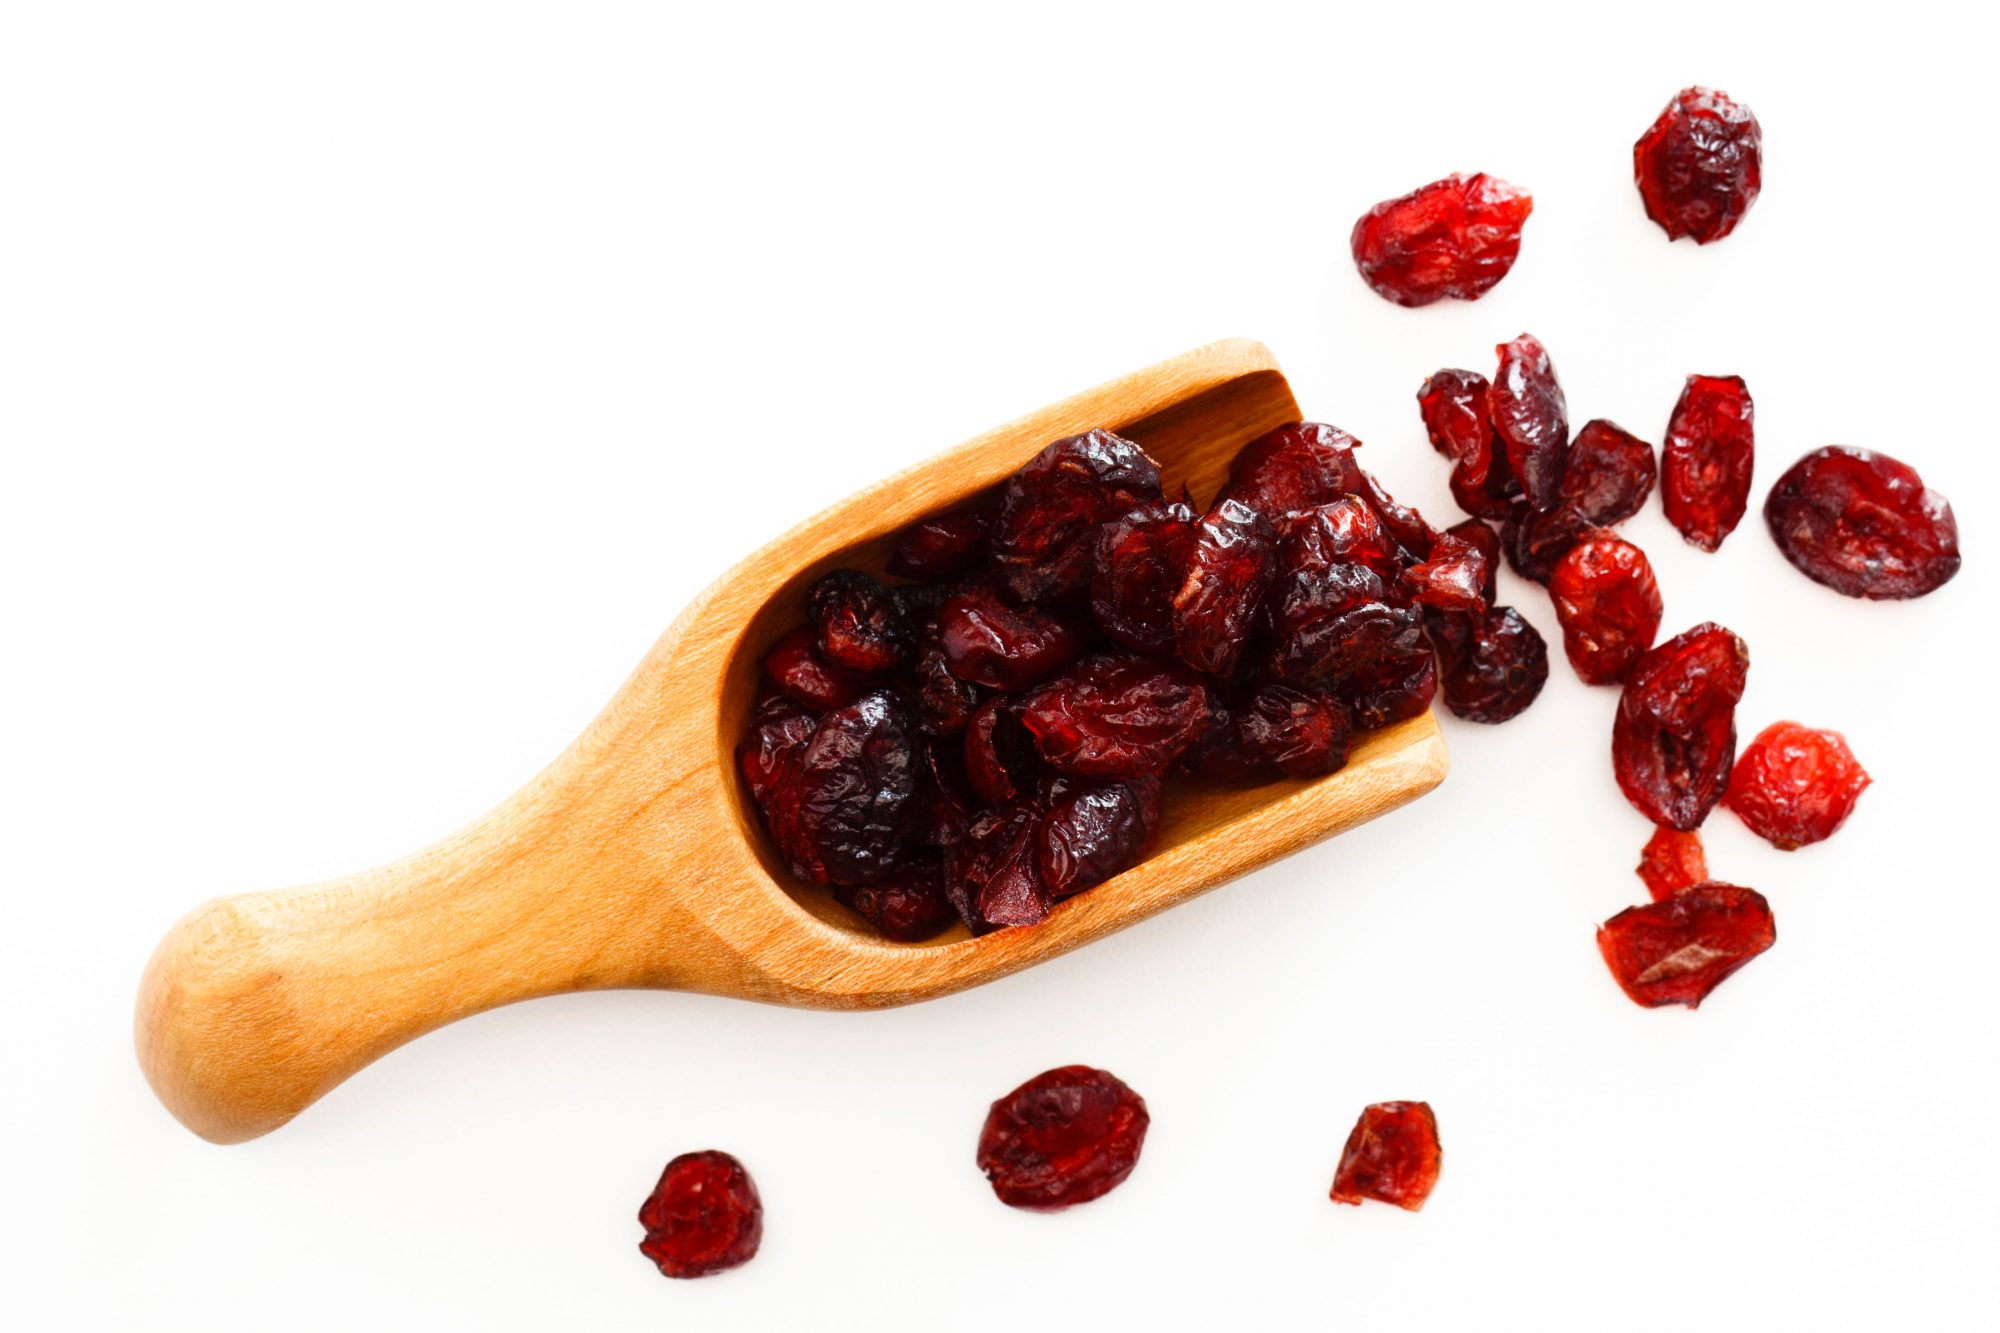 Dried cranberries with wooden scoop